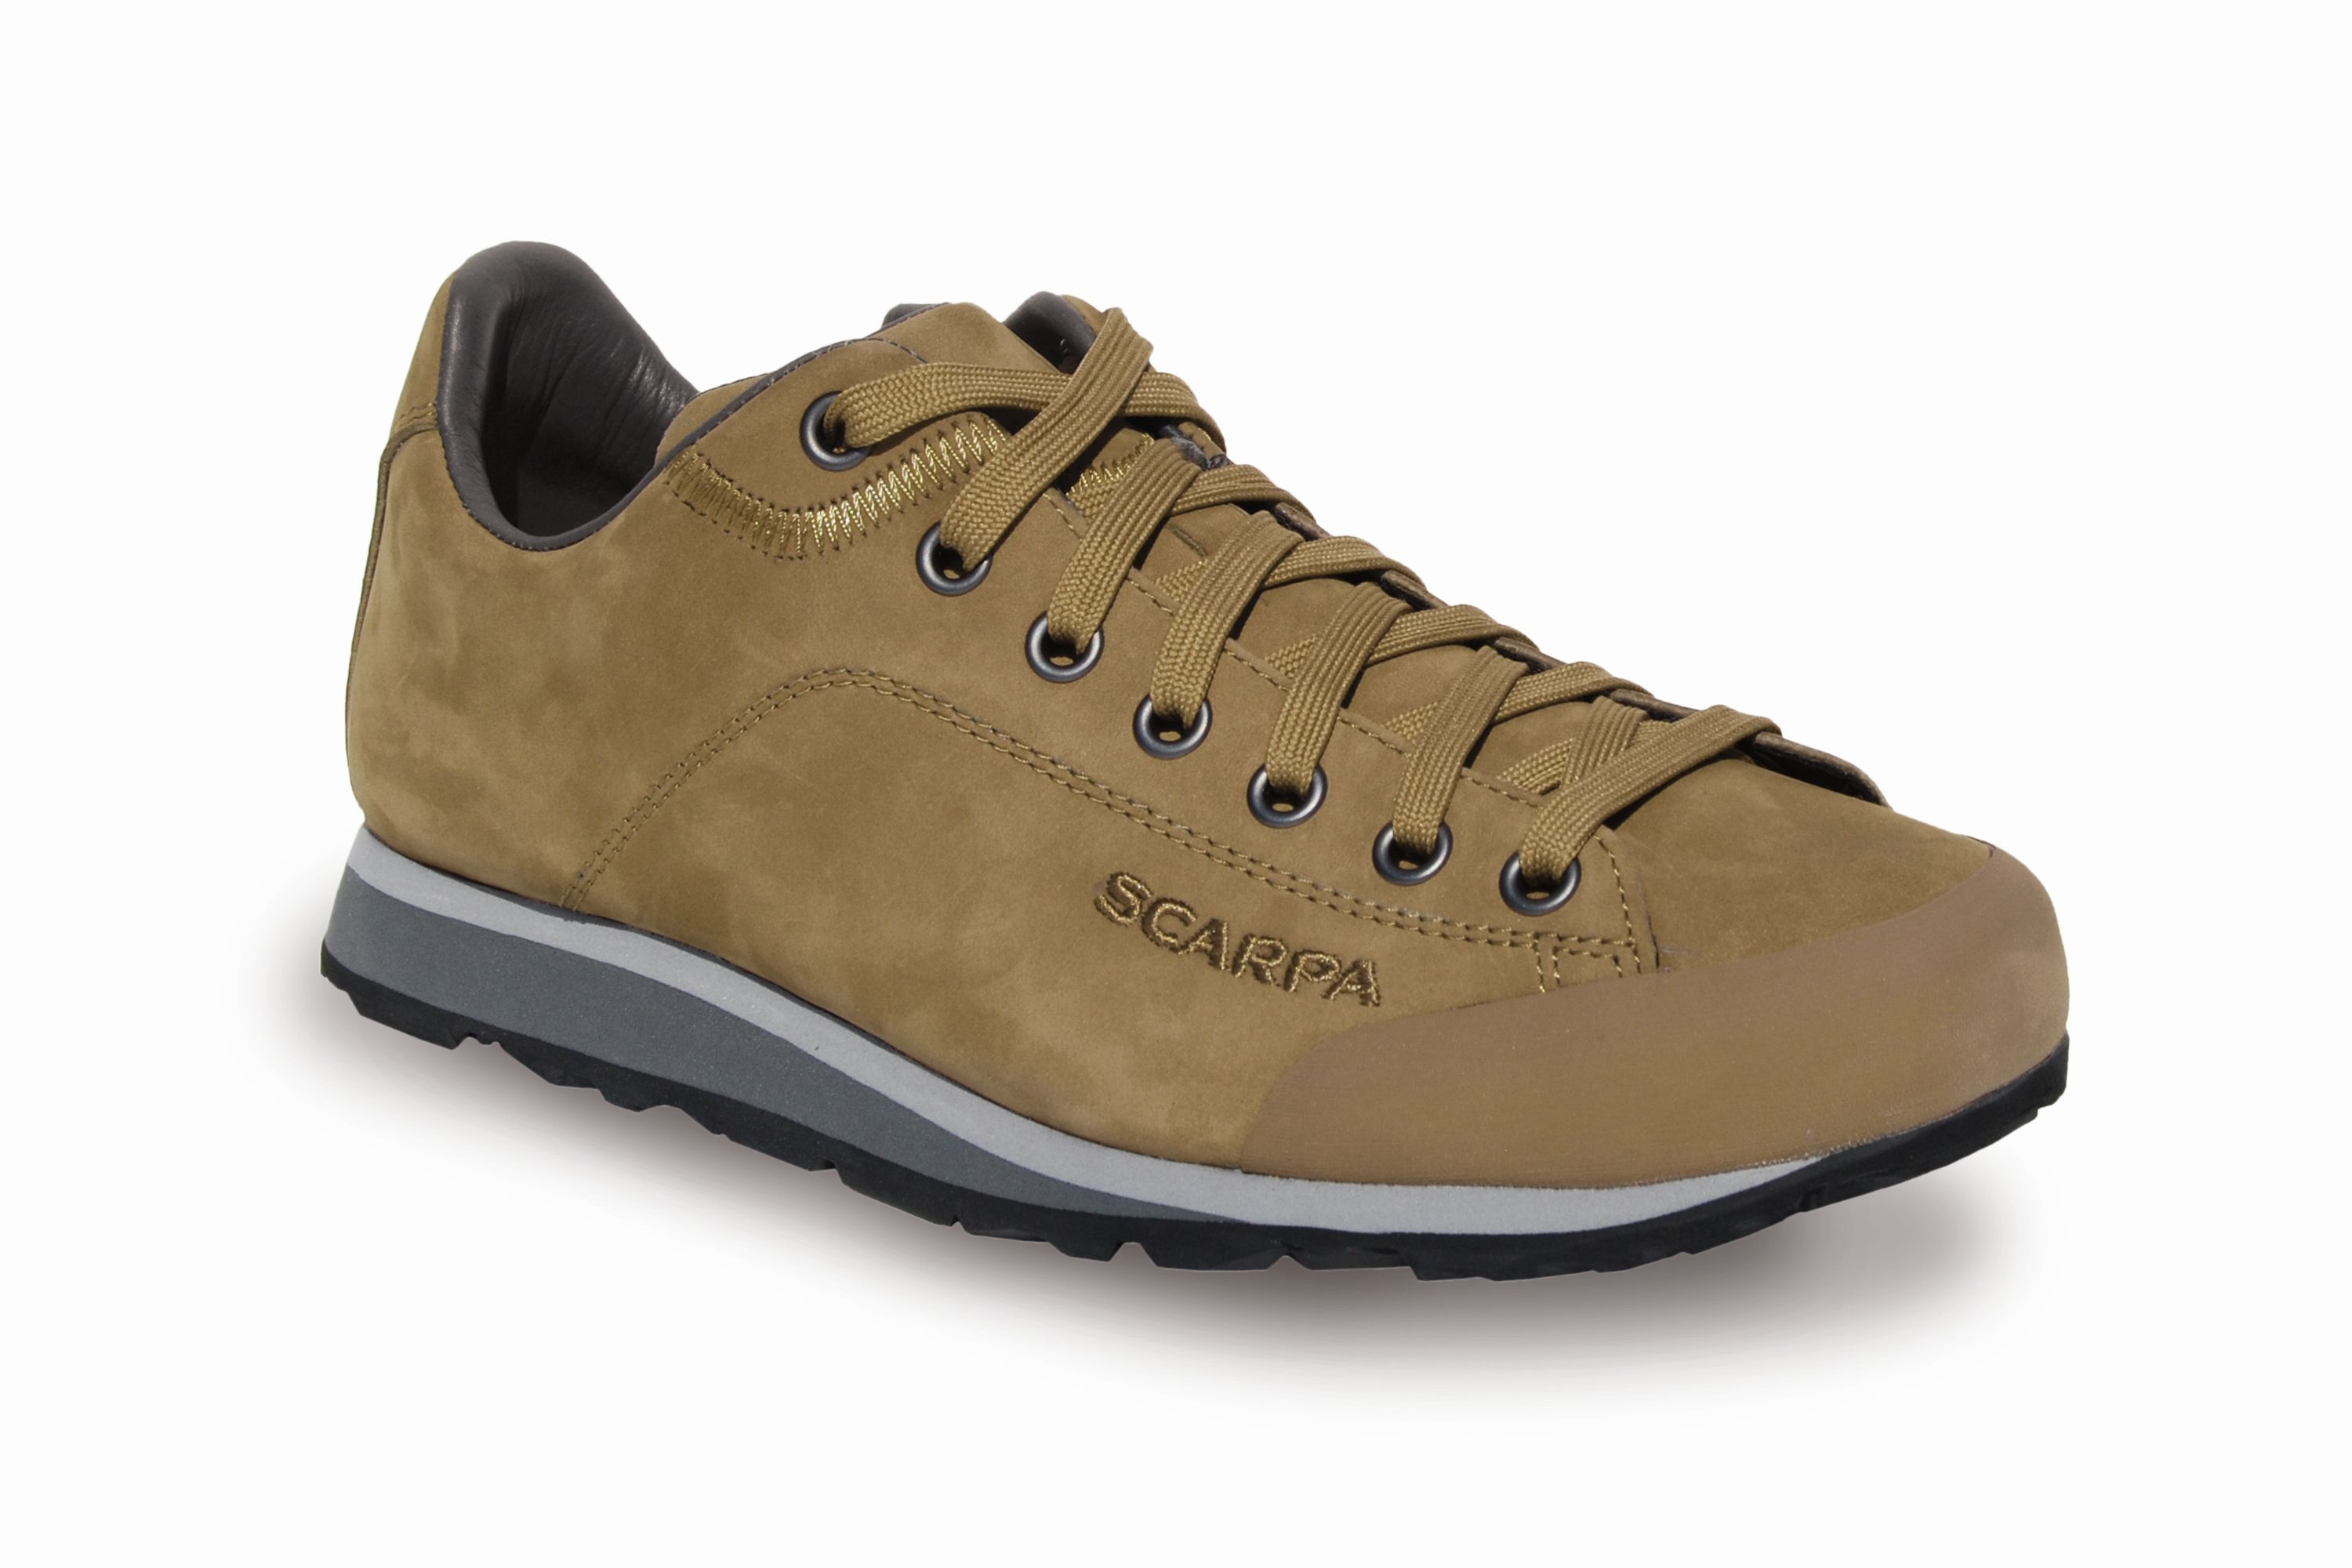 Scarpa Margarita Leather Mineral gray-30